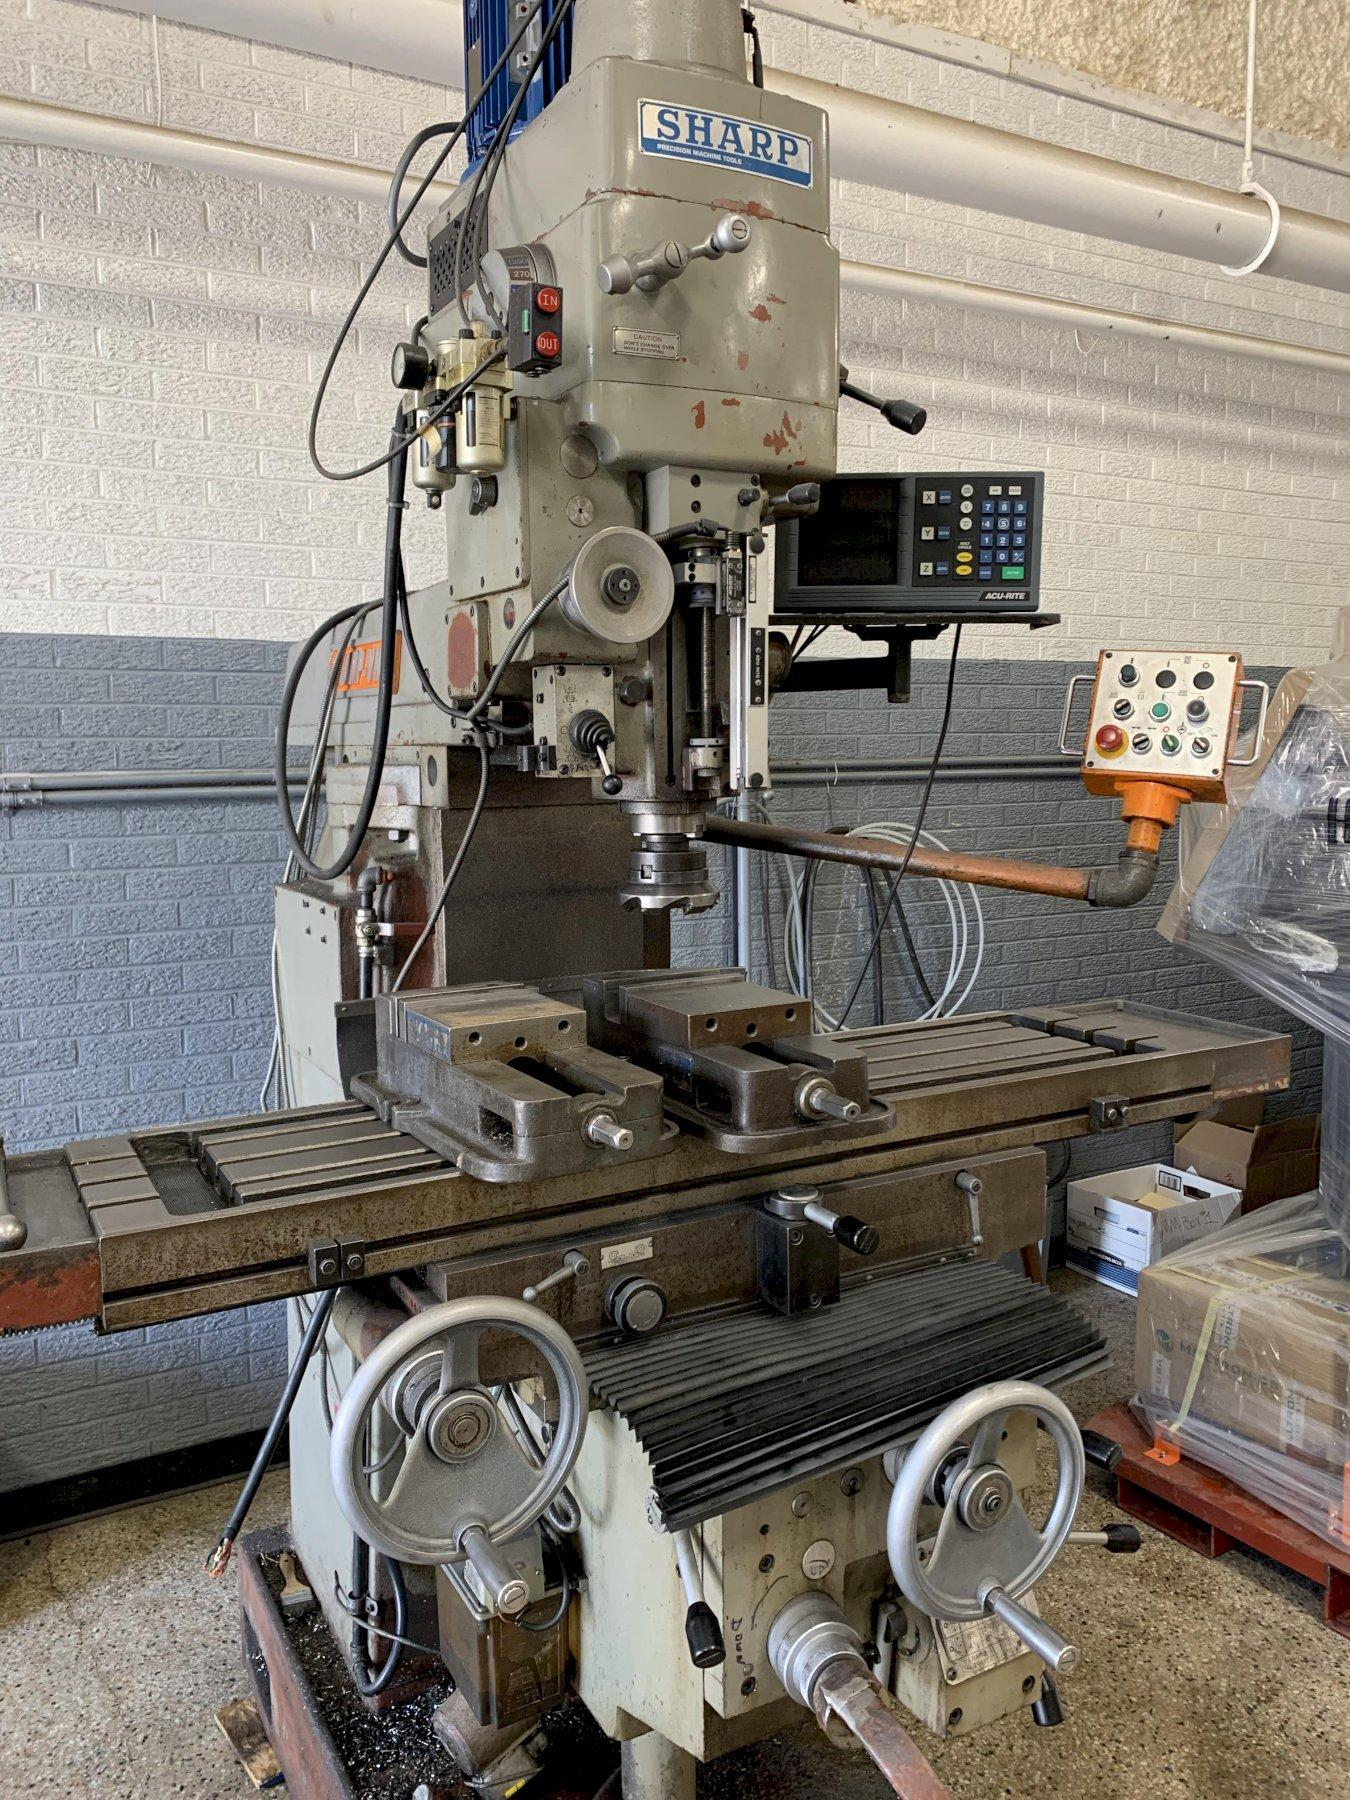 Sharp KF-V3 Heavy Duty Vertical Milling Machine, S/N 93007.